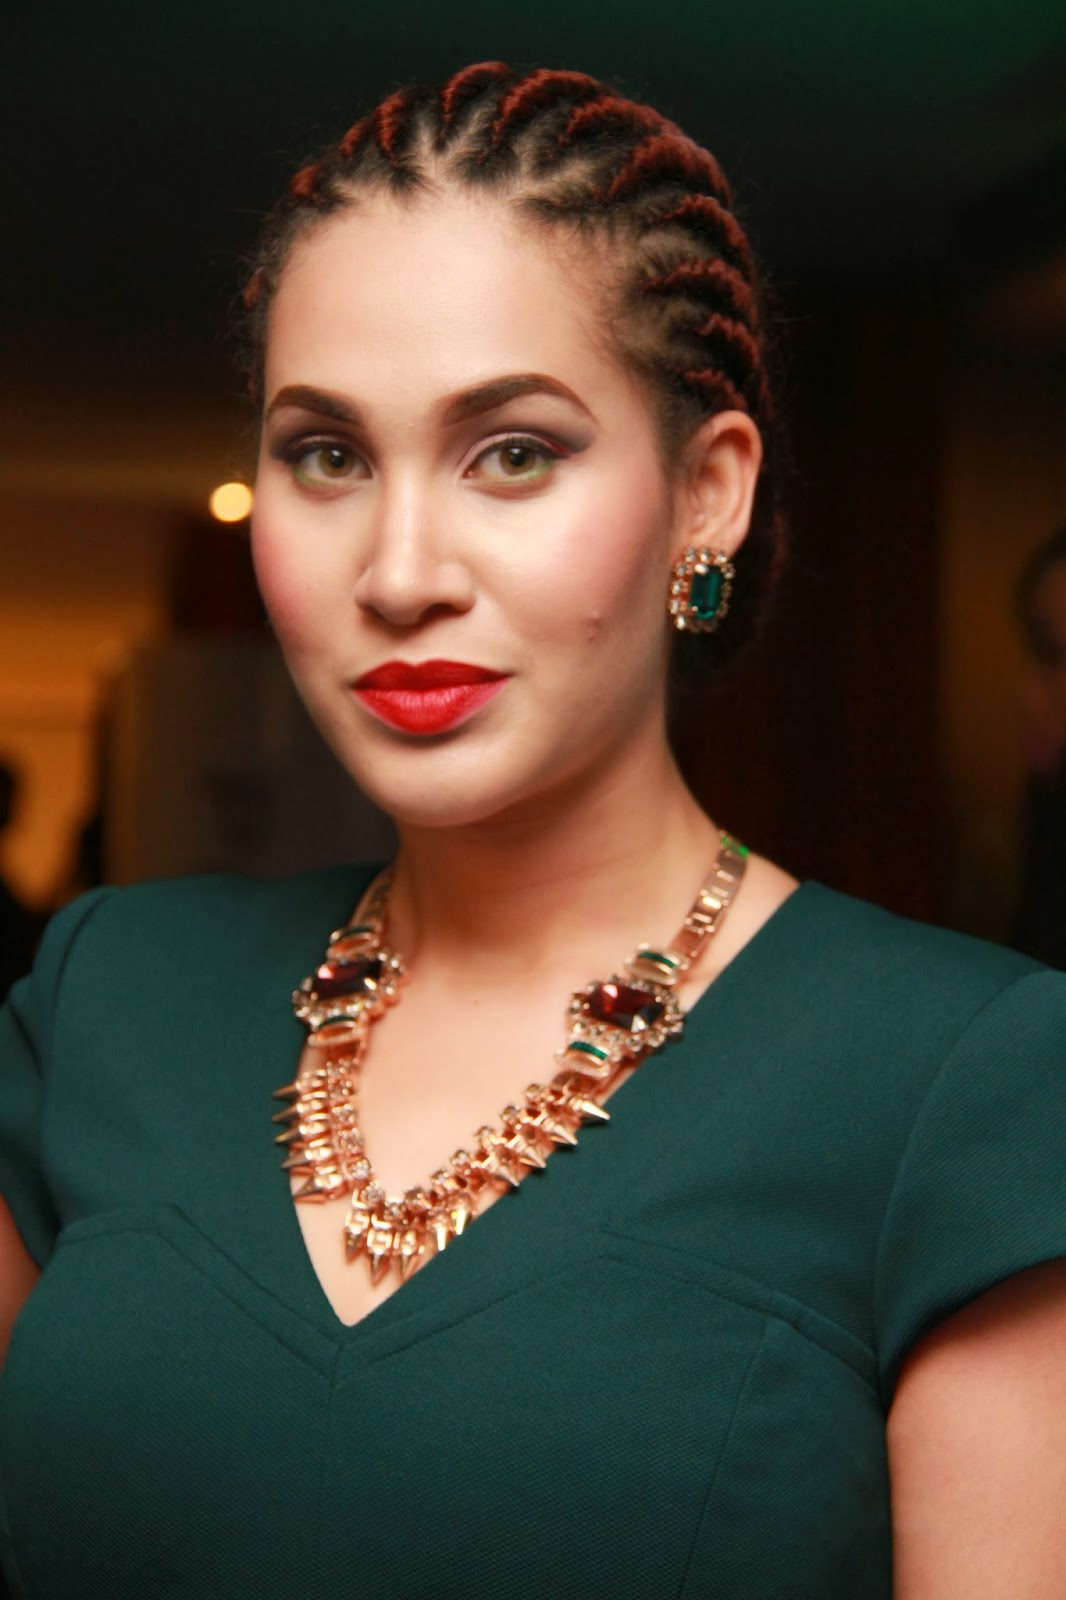 women fighting caroline danjuma husband